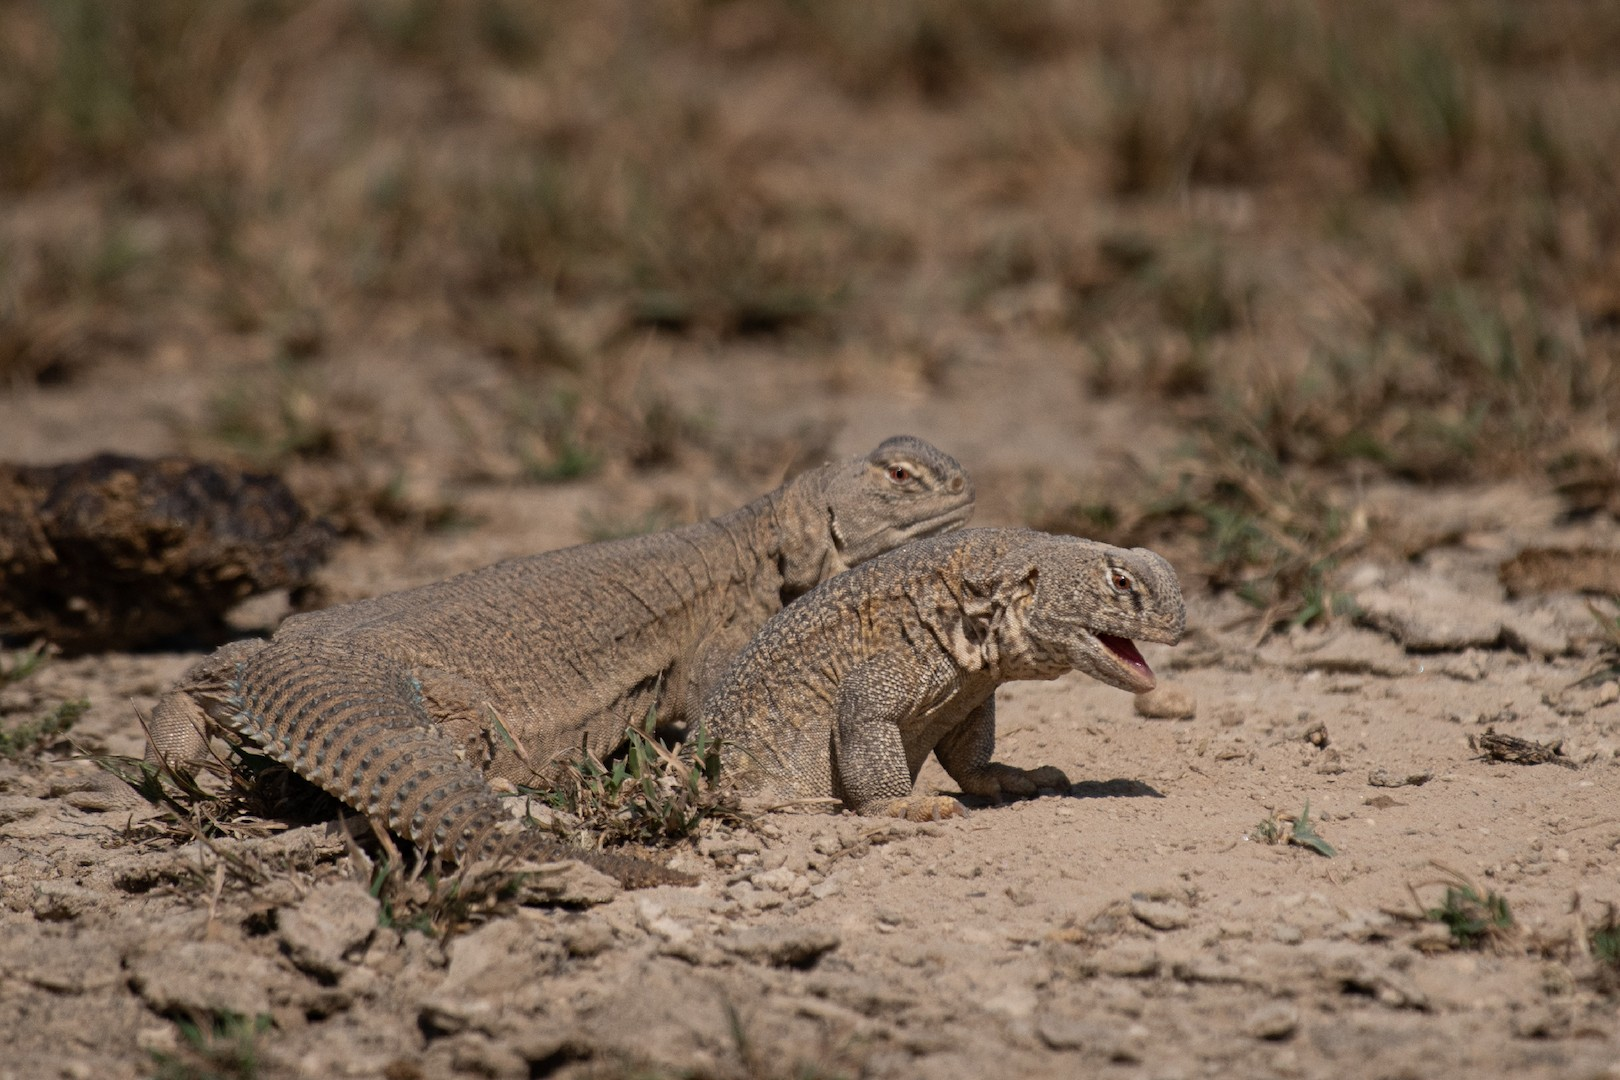 Under duress, spiny-tailed lizards defend their burrows by puffing up their bodies to block the entrance, and also to appear bigger and stronger to the intruder.